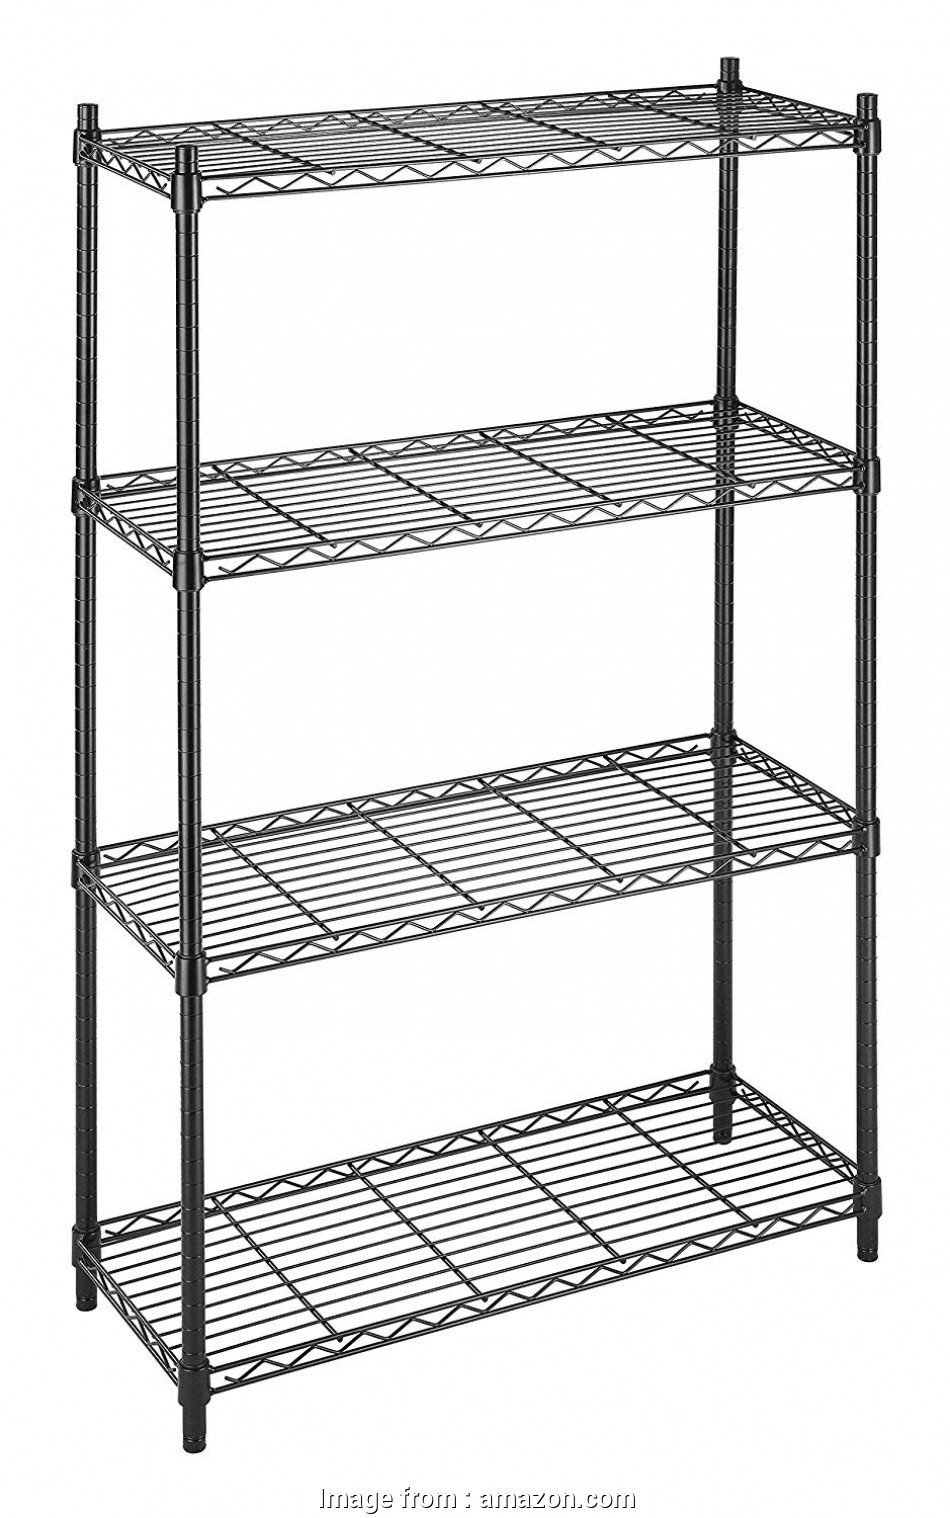 whitmor black wire shelving Amazon.com: Whitmor Supreme 4 Tier Shelving with Adjustable Shelves, Leveling Feet, Black: Home & Kitchen 10 Practical Whitmor Black Wire Shelving Solutions